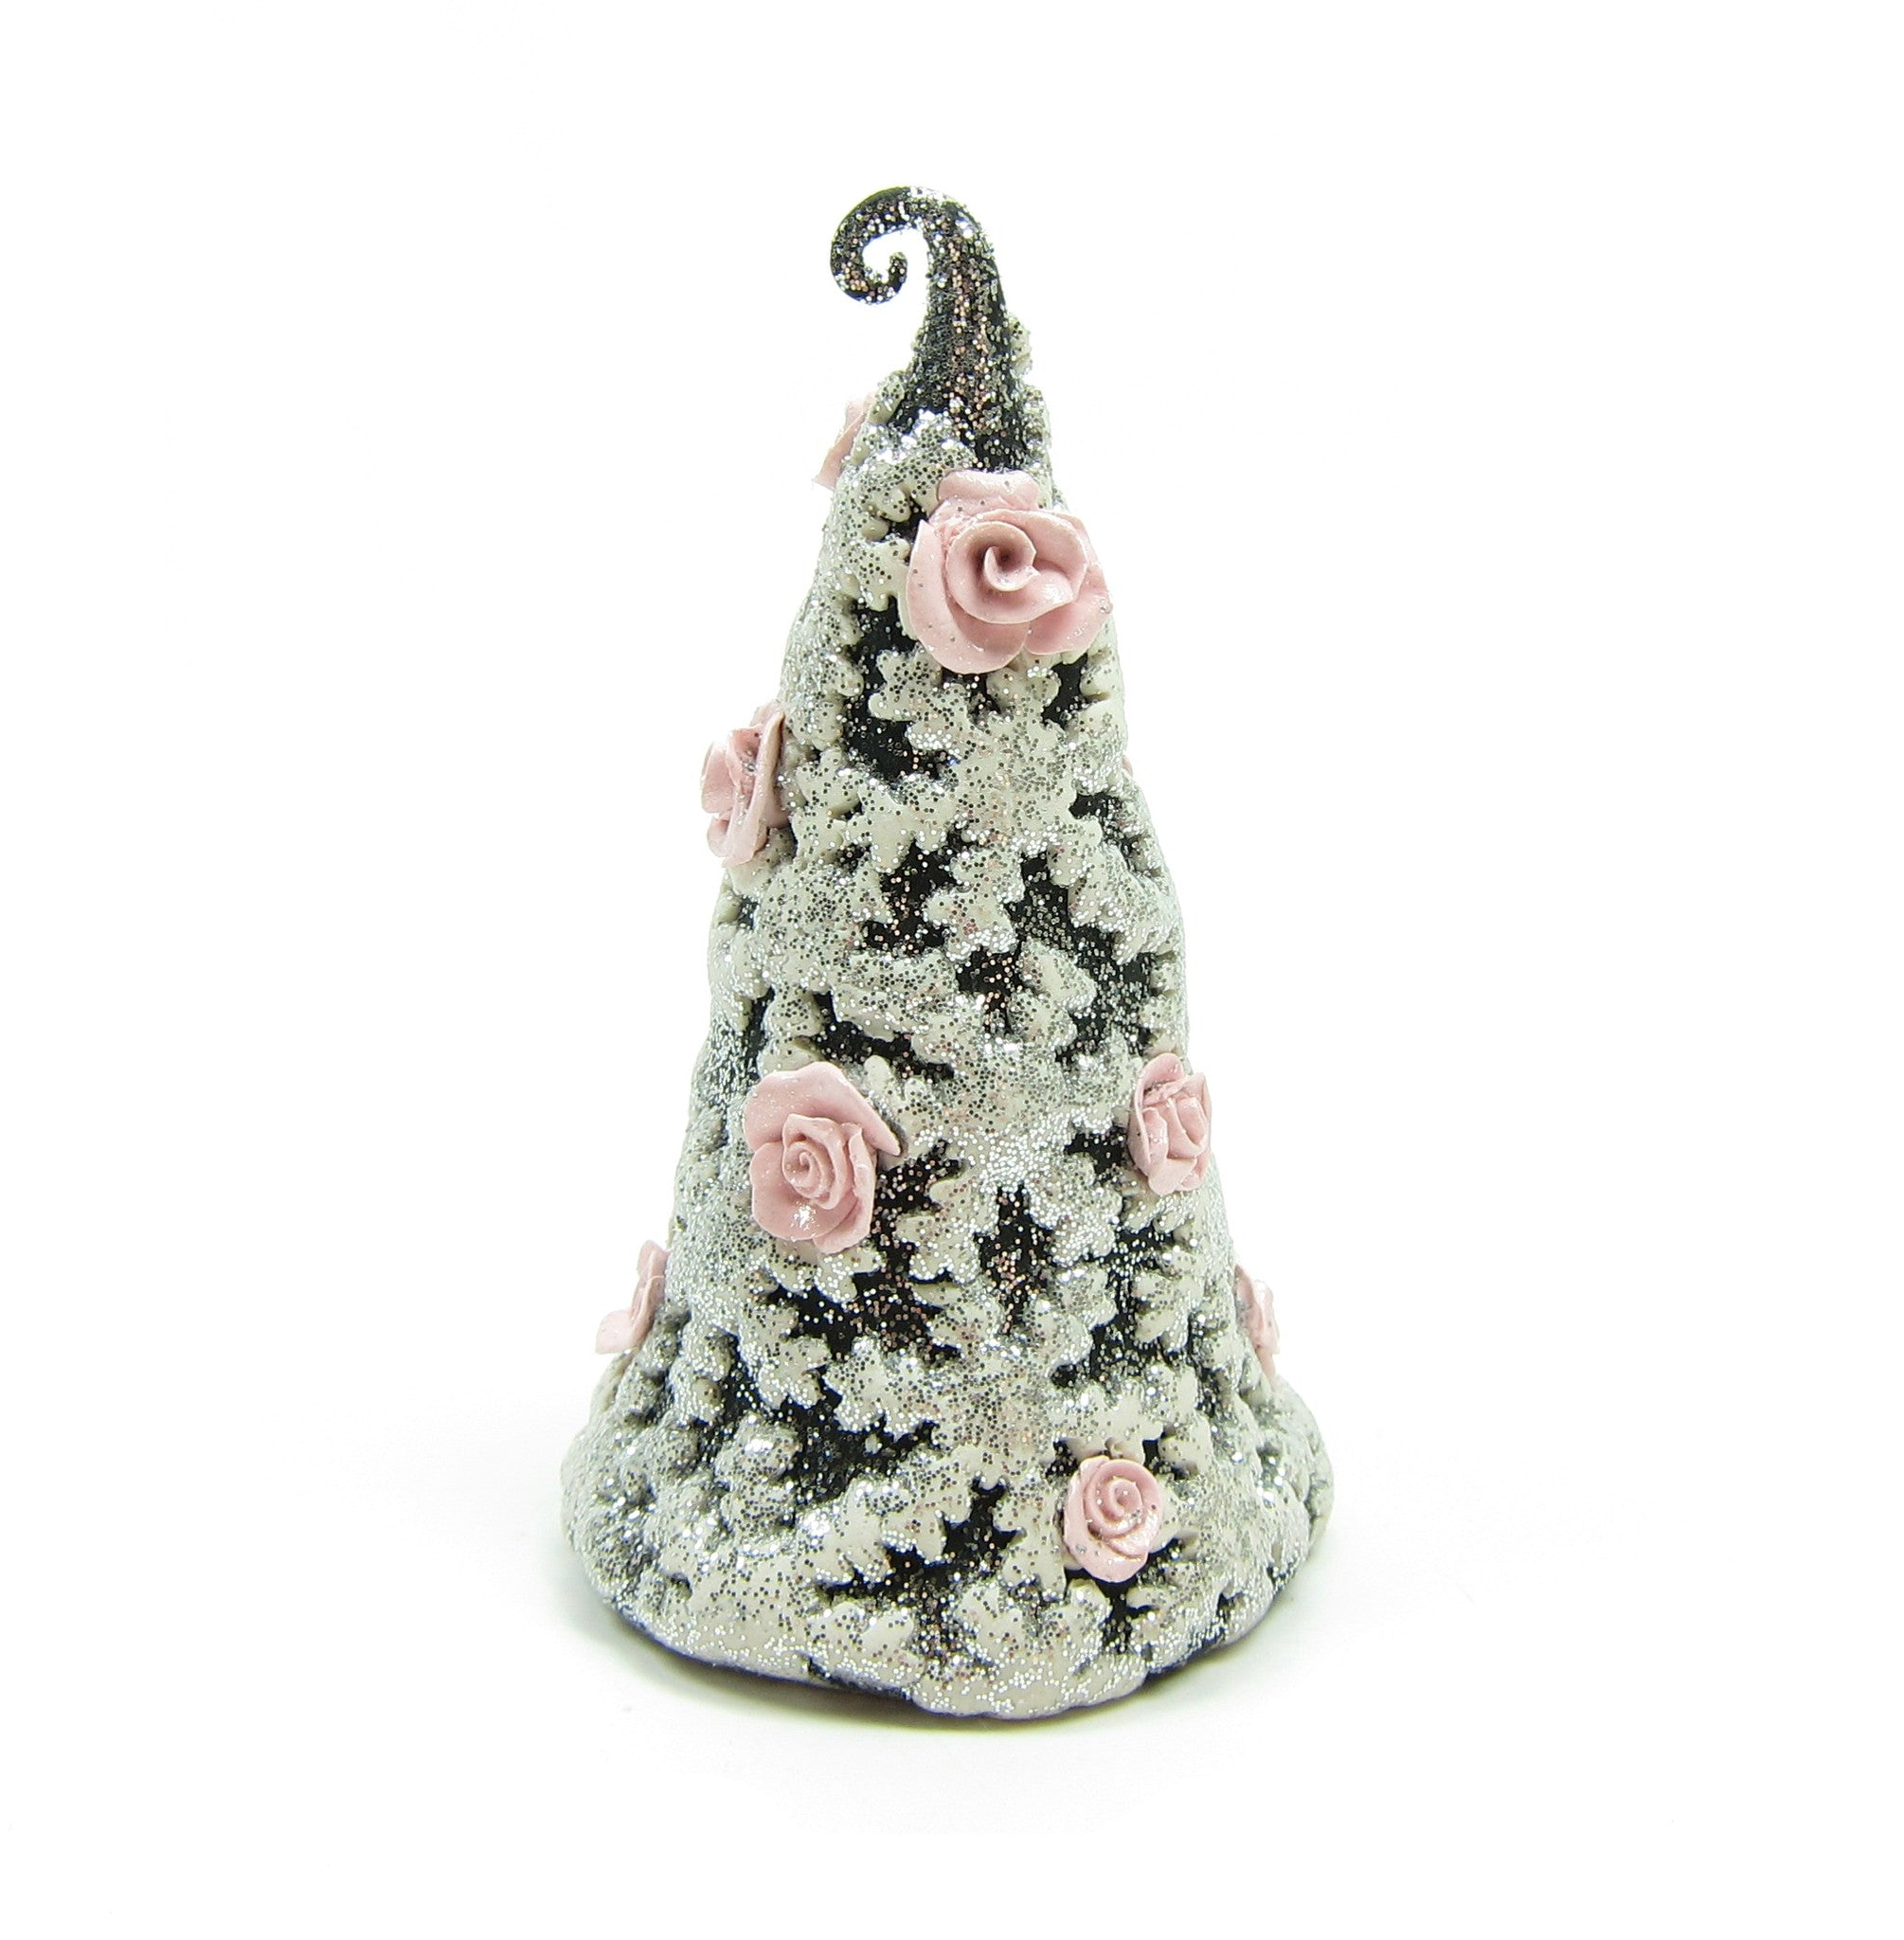 Black & White Christmas Tree Figurine with Pink Roses